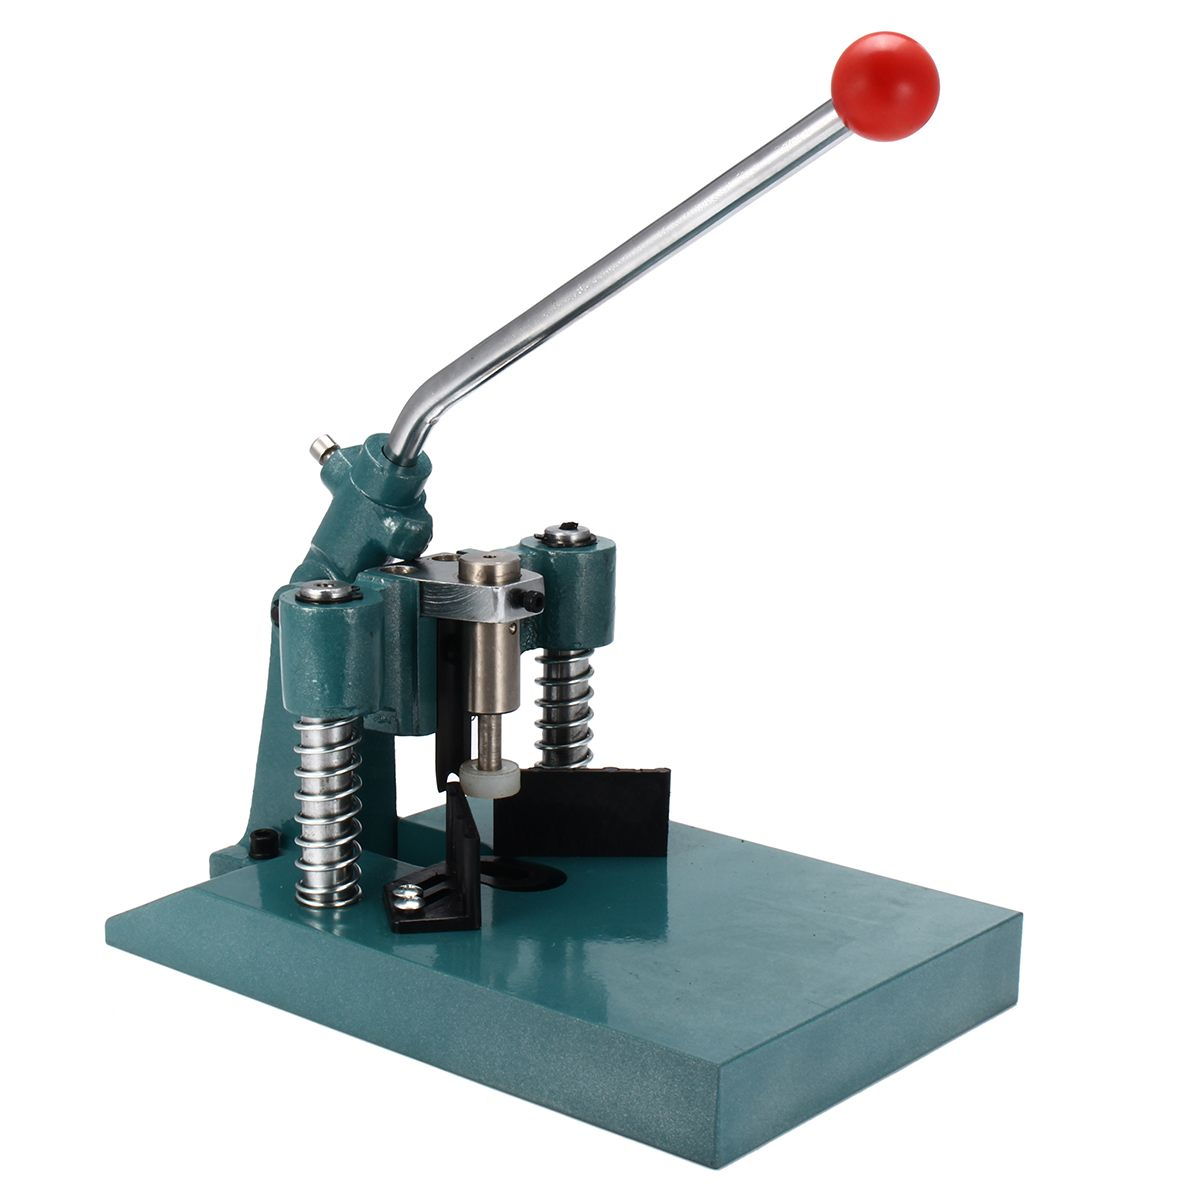 Manual Corner Rounder Punch Metal Cutter With Two Kinds Blades R6(1/4Inch) R10(3/8Inch) PVC Paper Alumium Stack Machine Tools